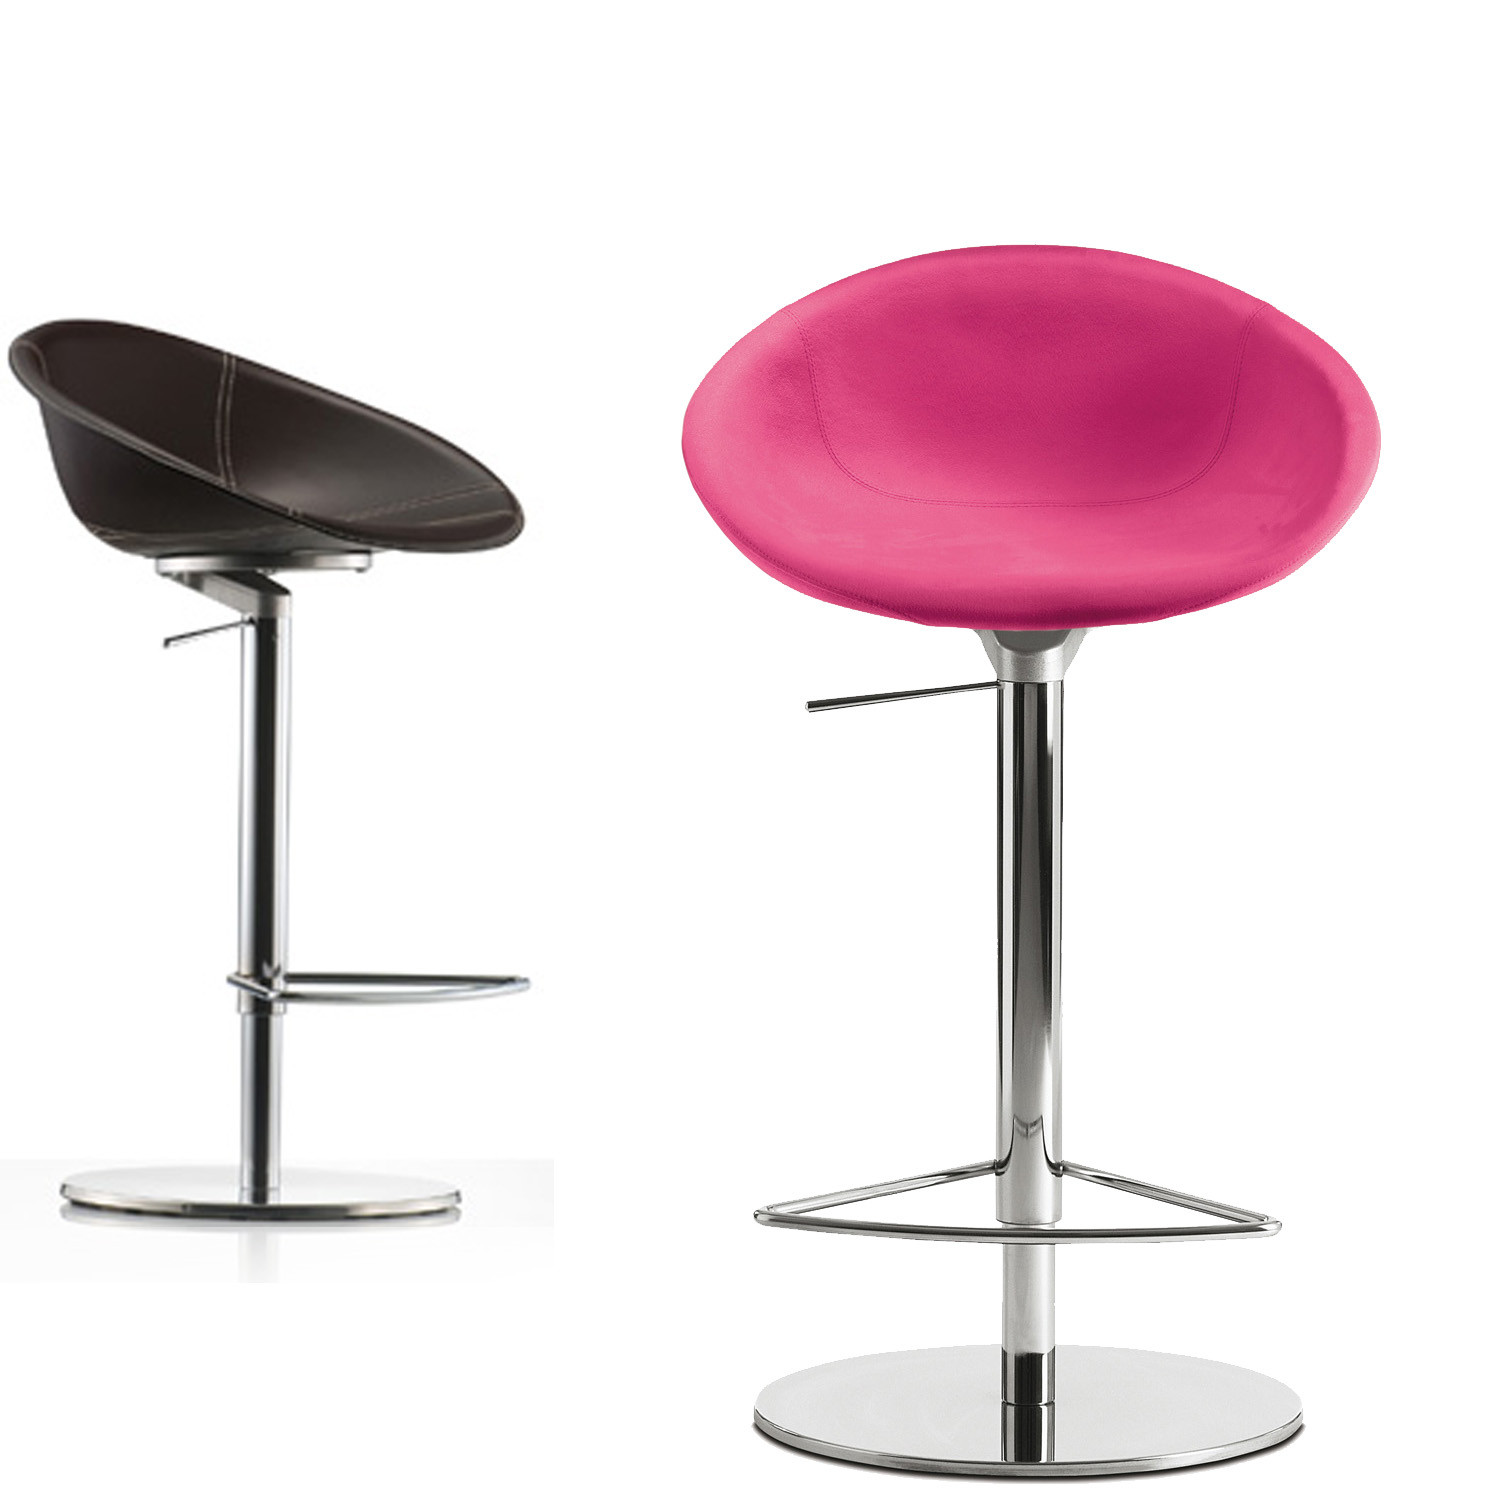 Gliss Bar Stools Modern Bar Stools Apr232s Furniture : gliss bar stool 09 from www.apresfurniture.co.uk size 1500 x 1500 jpeg 132kB